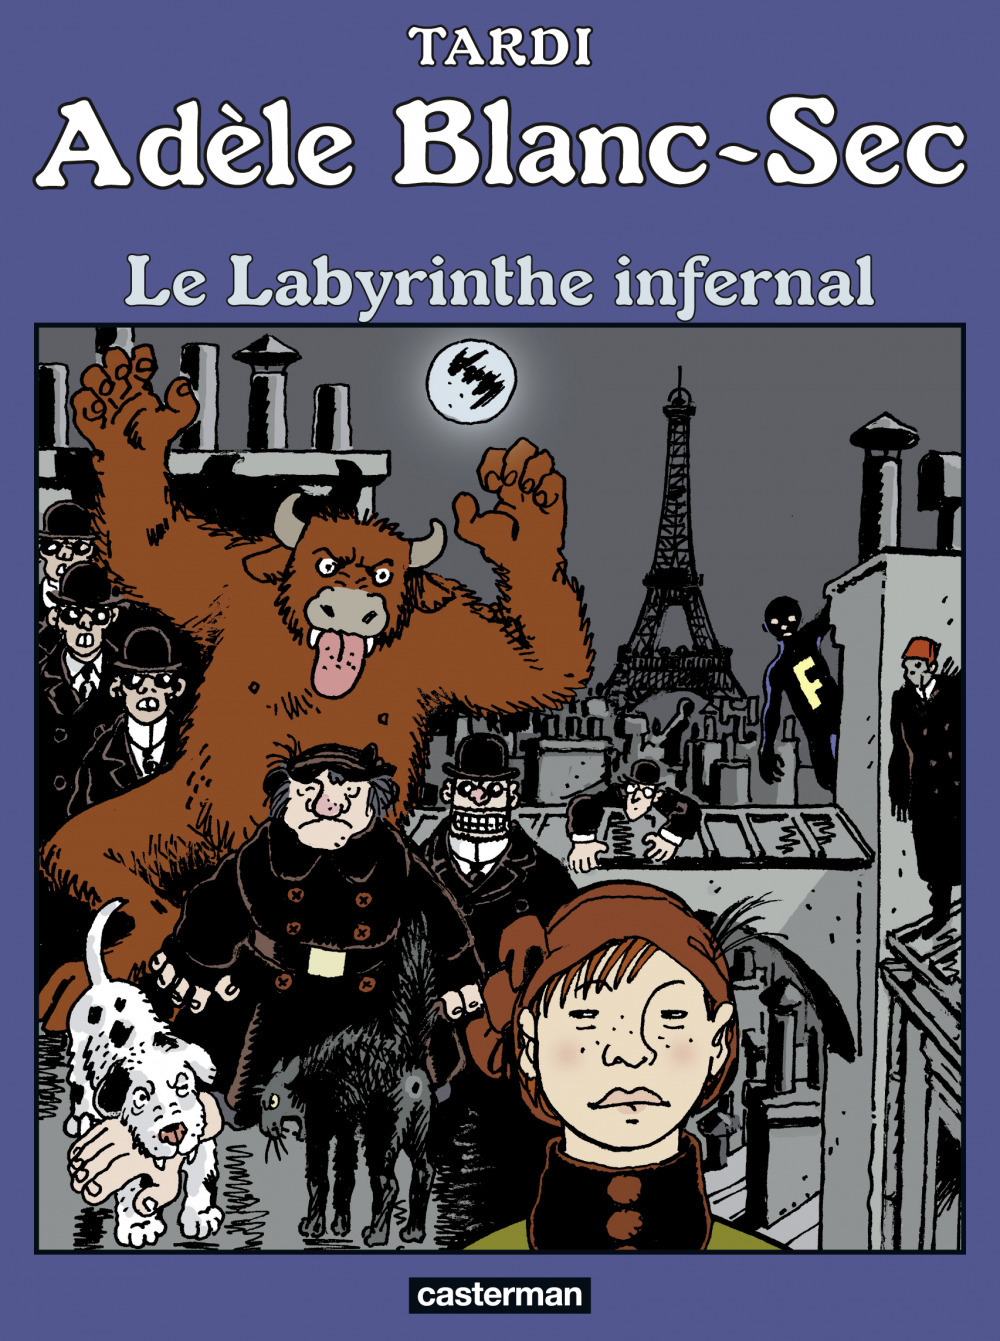 Le labyrinthe infernal